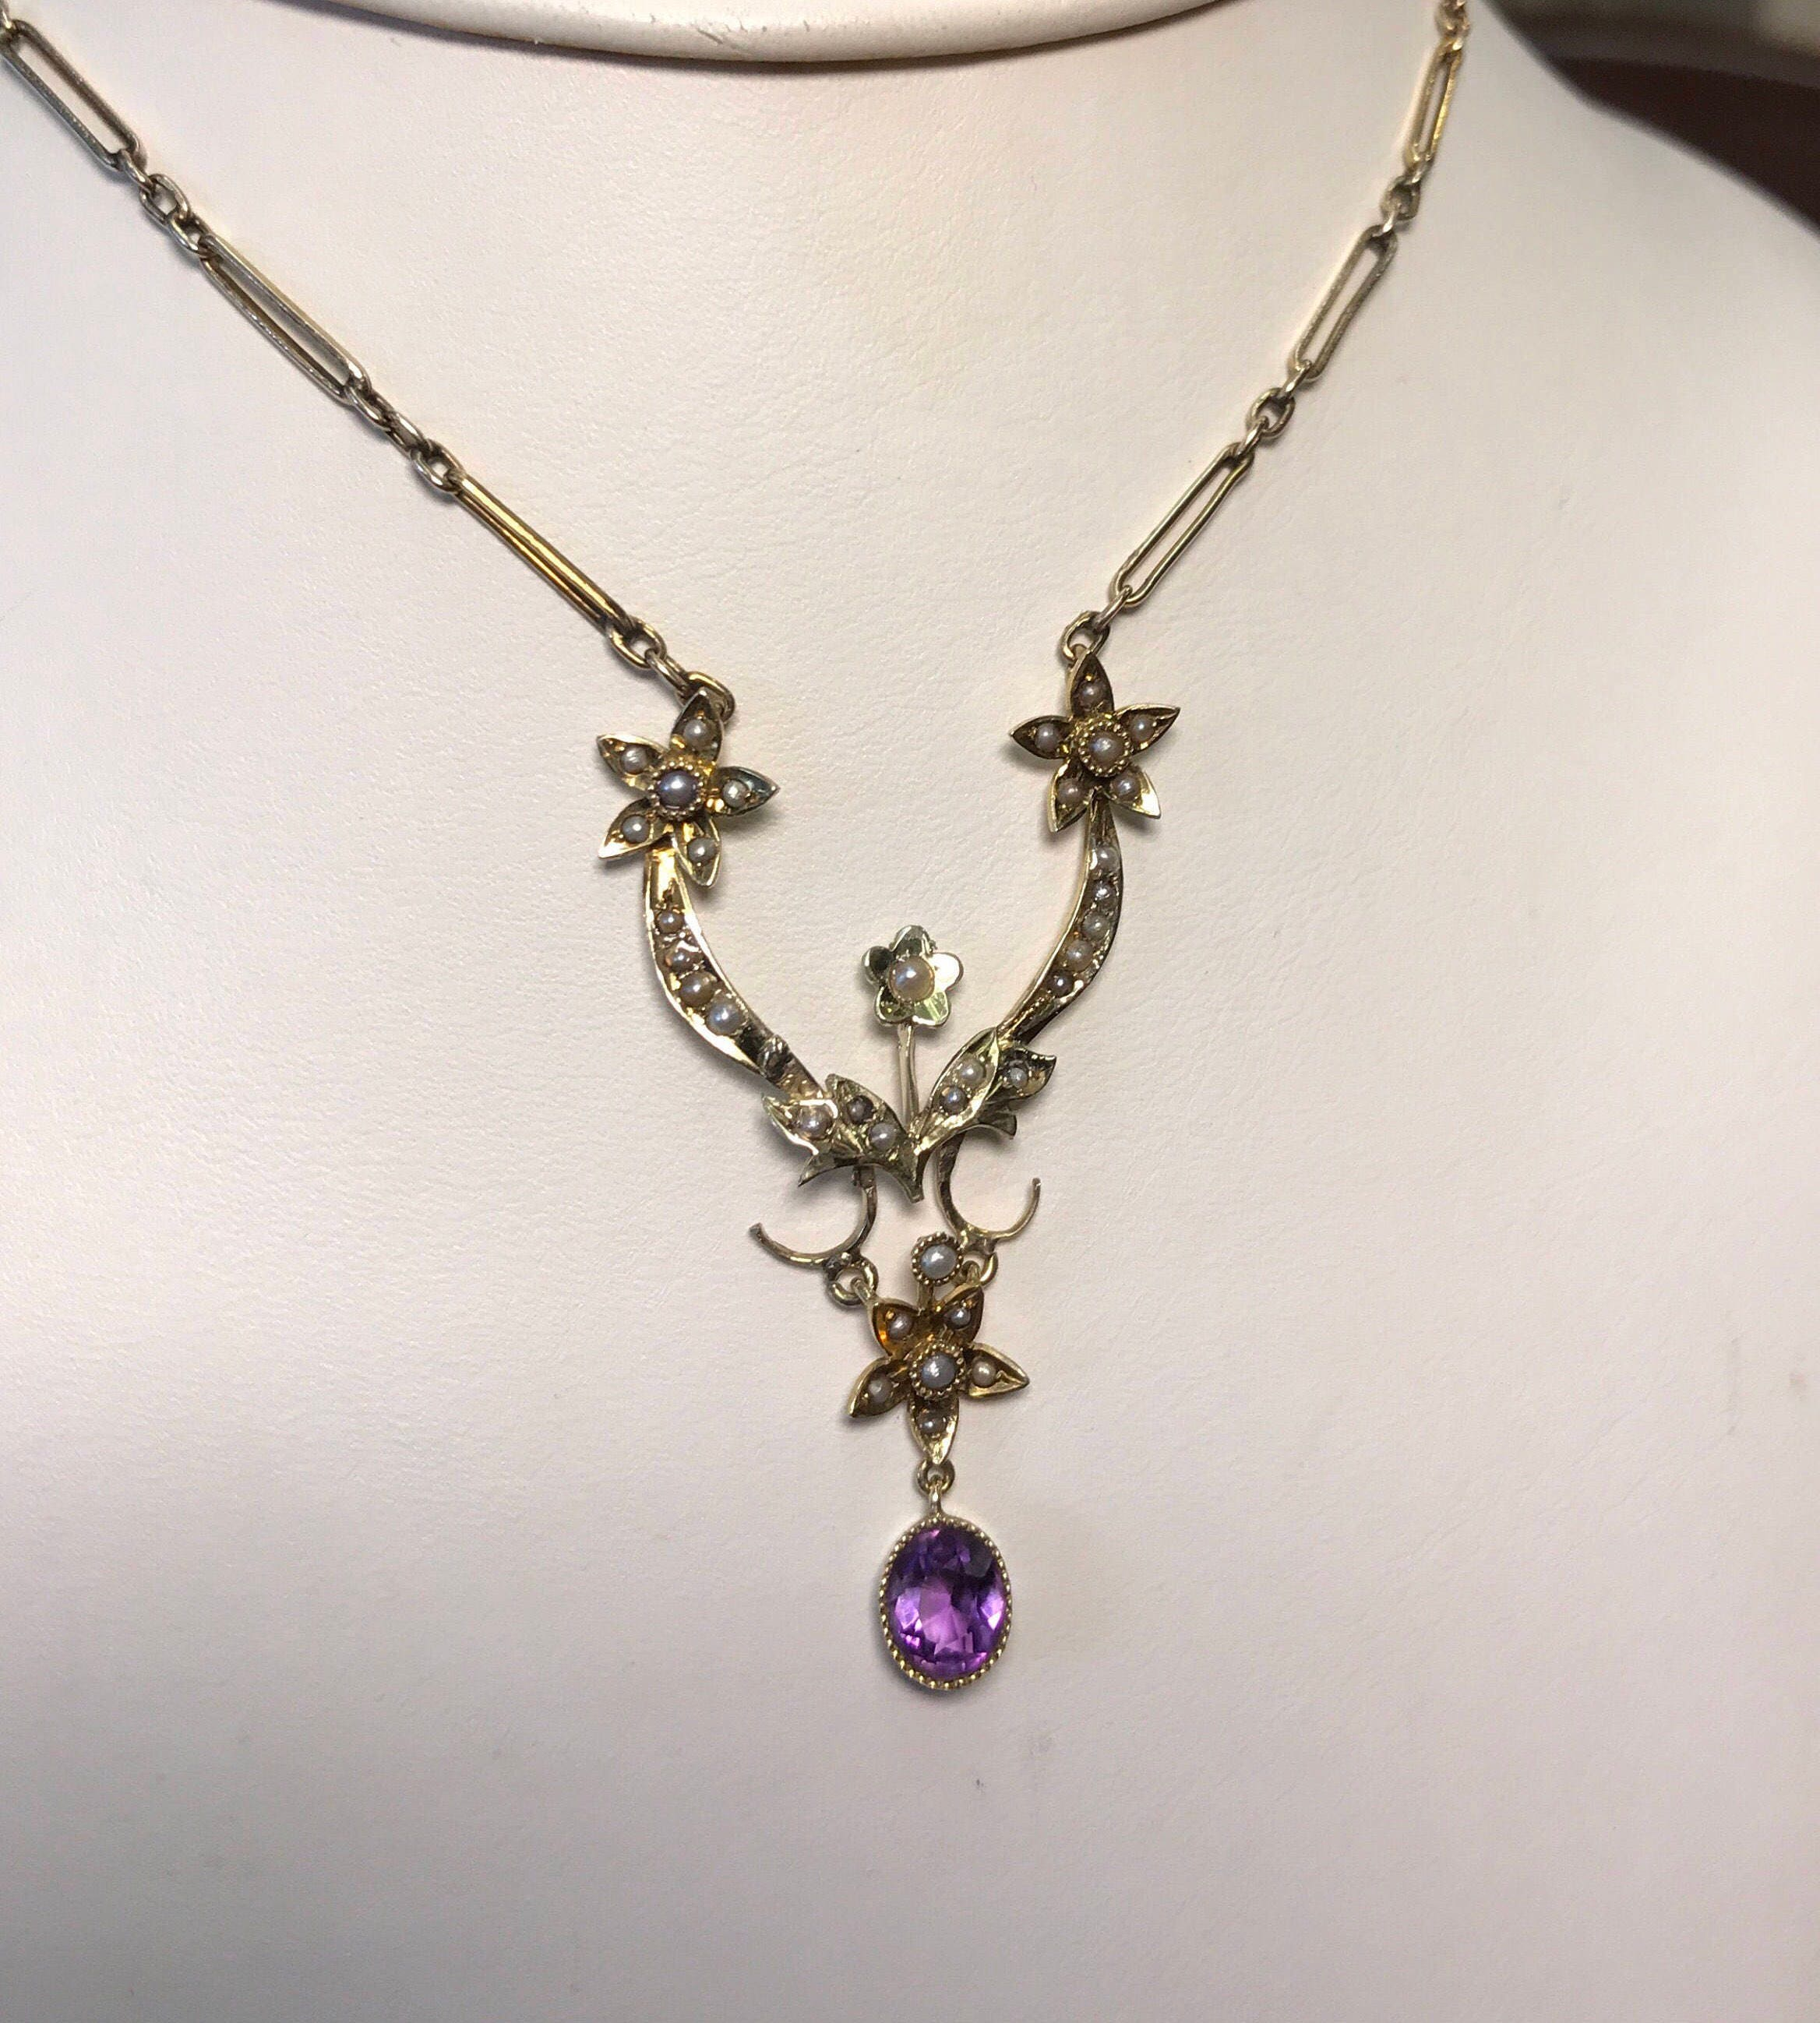 antique edwardian 14k carat gold lavalier pendant necklace amethyst seed pearl on 9k chain